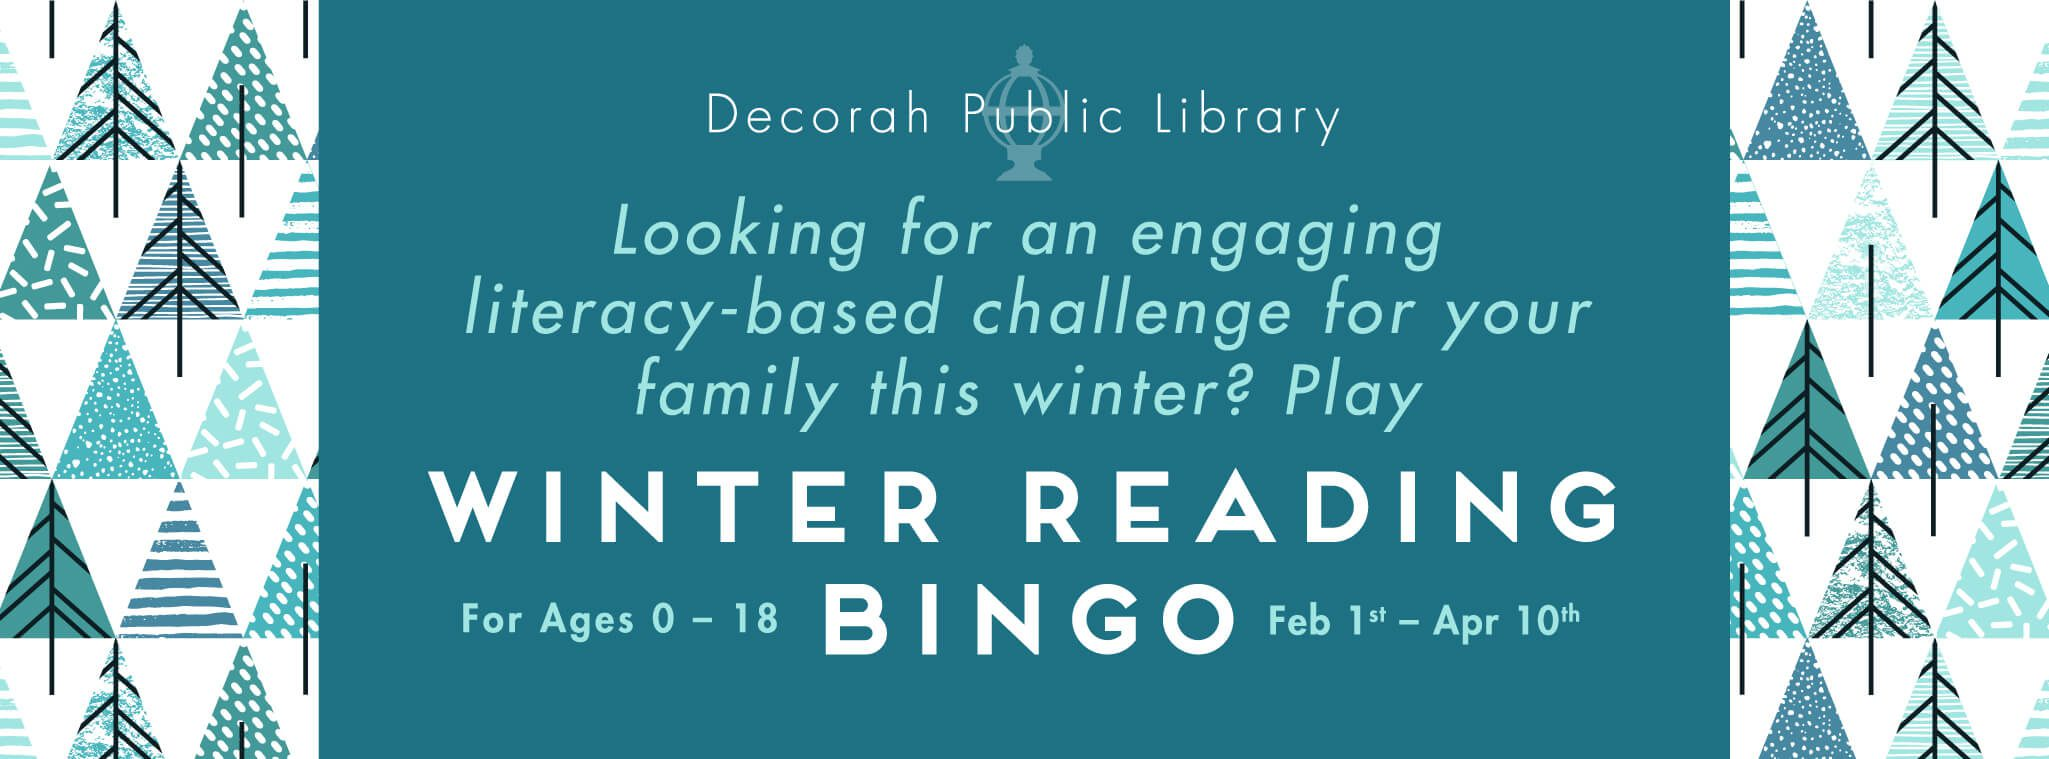 Winter Bingo Reading Decorah Publicv Library